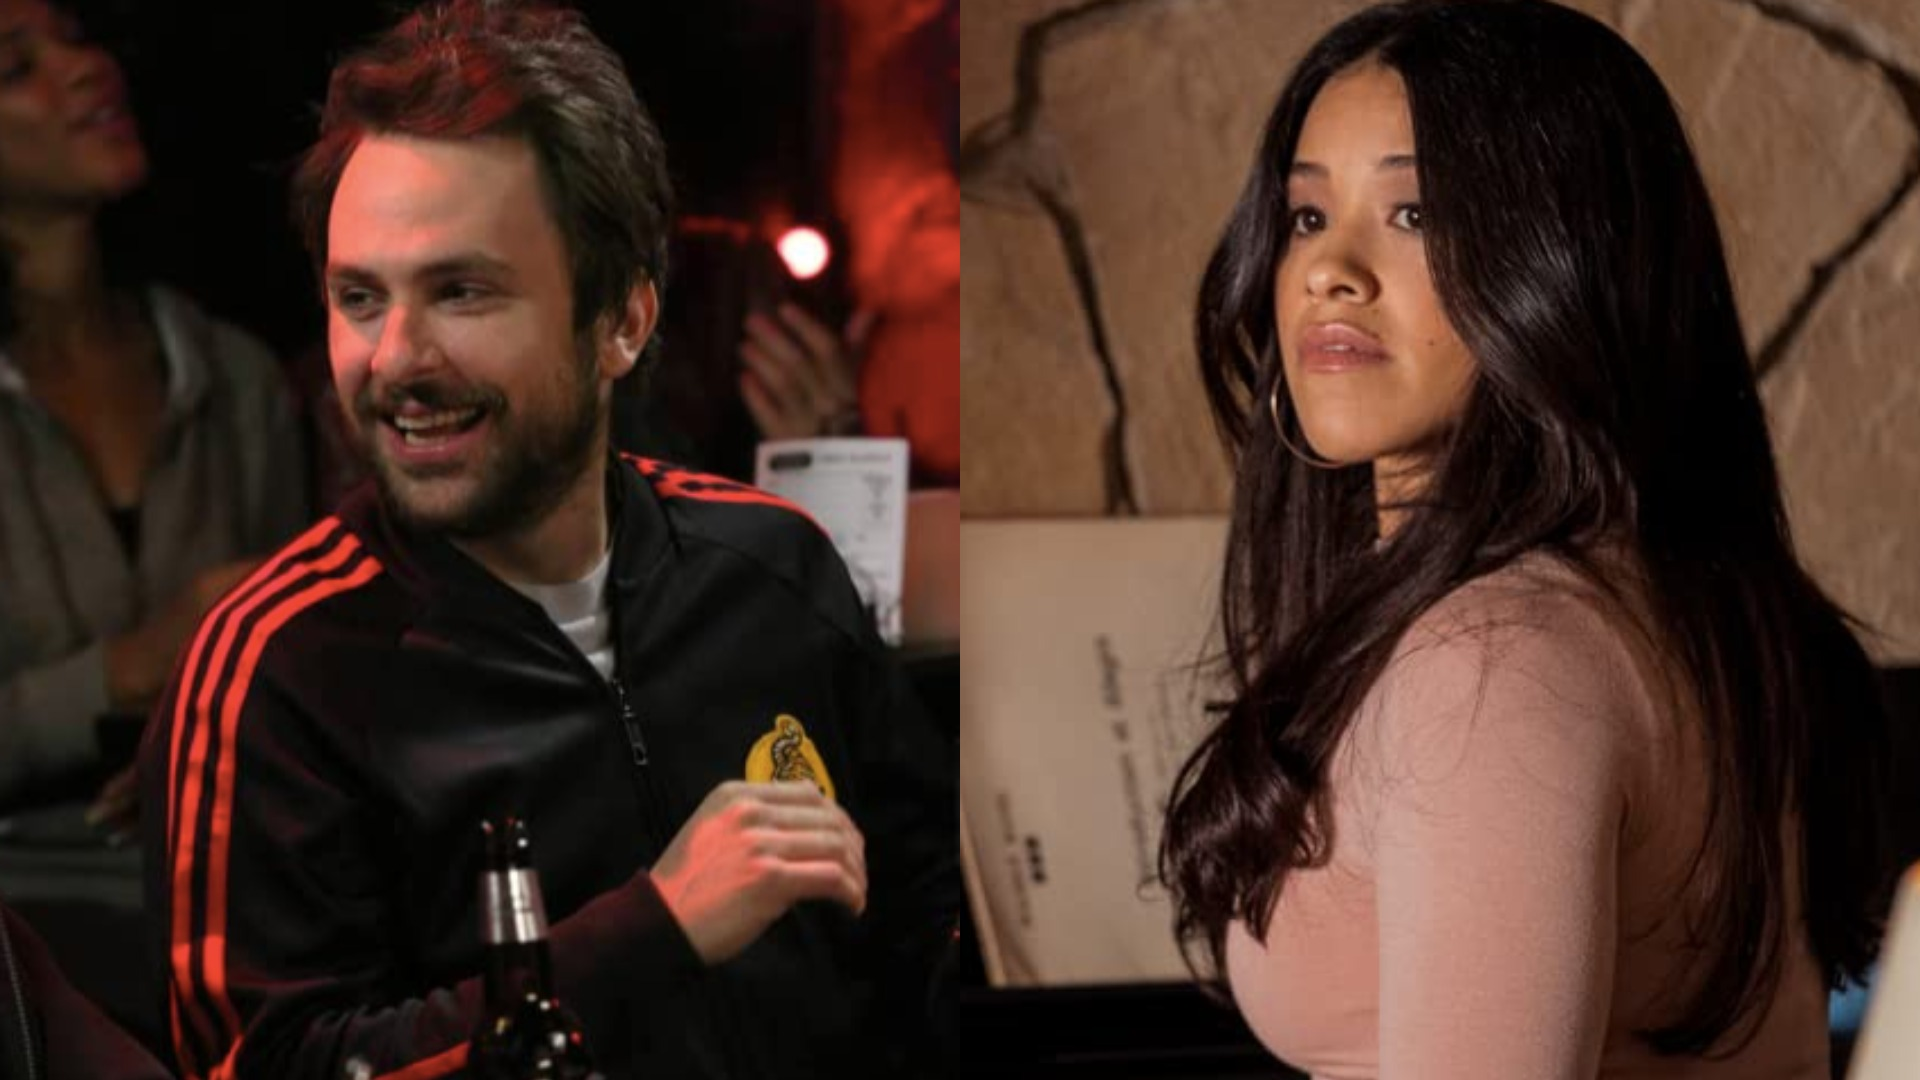 New Amazon rom-com will feature star-studded cast including Charlie Day and Gina Rodriguez